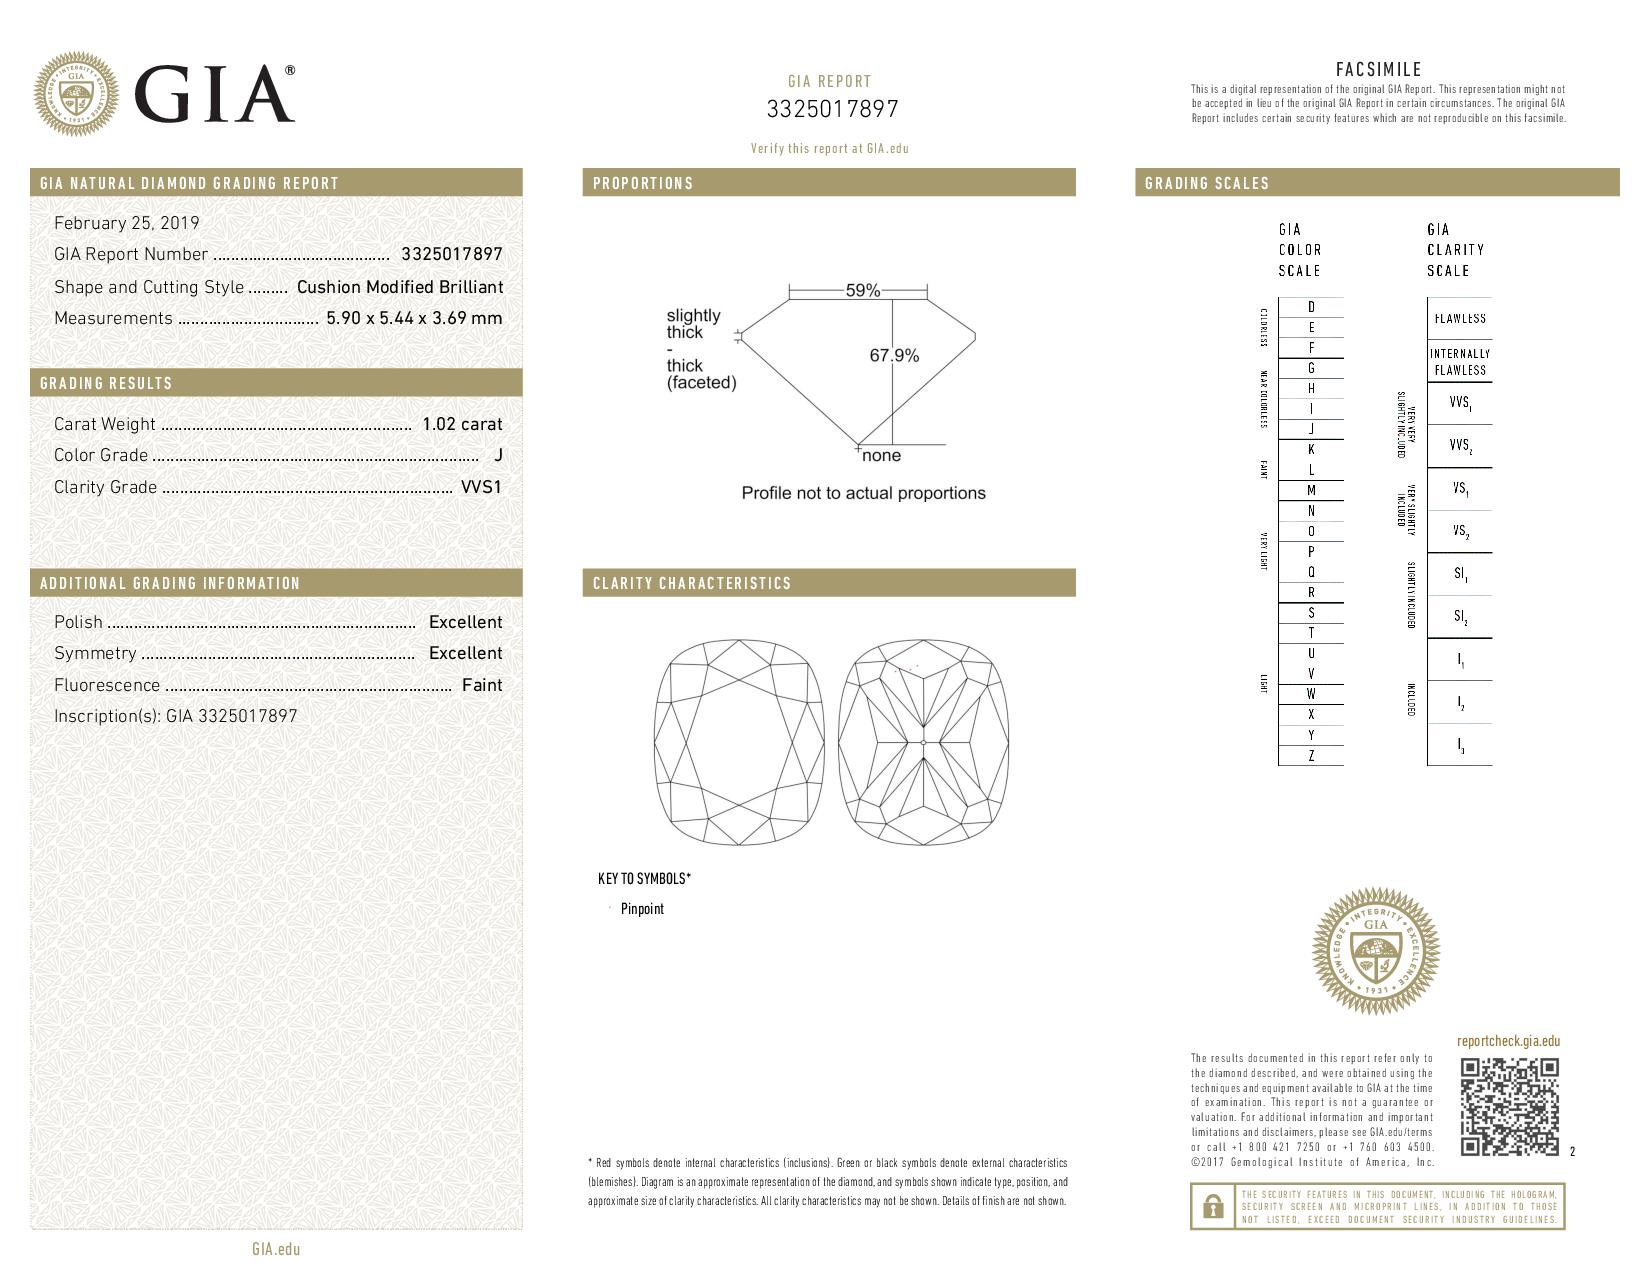 This is a 1.02 carat cushion shape, J color, VVS1 clarity natural diamond accompanied by a GIA grading report.